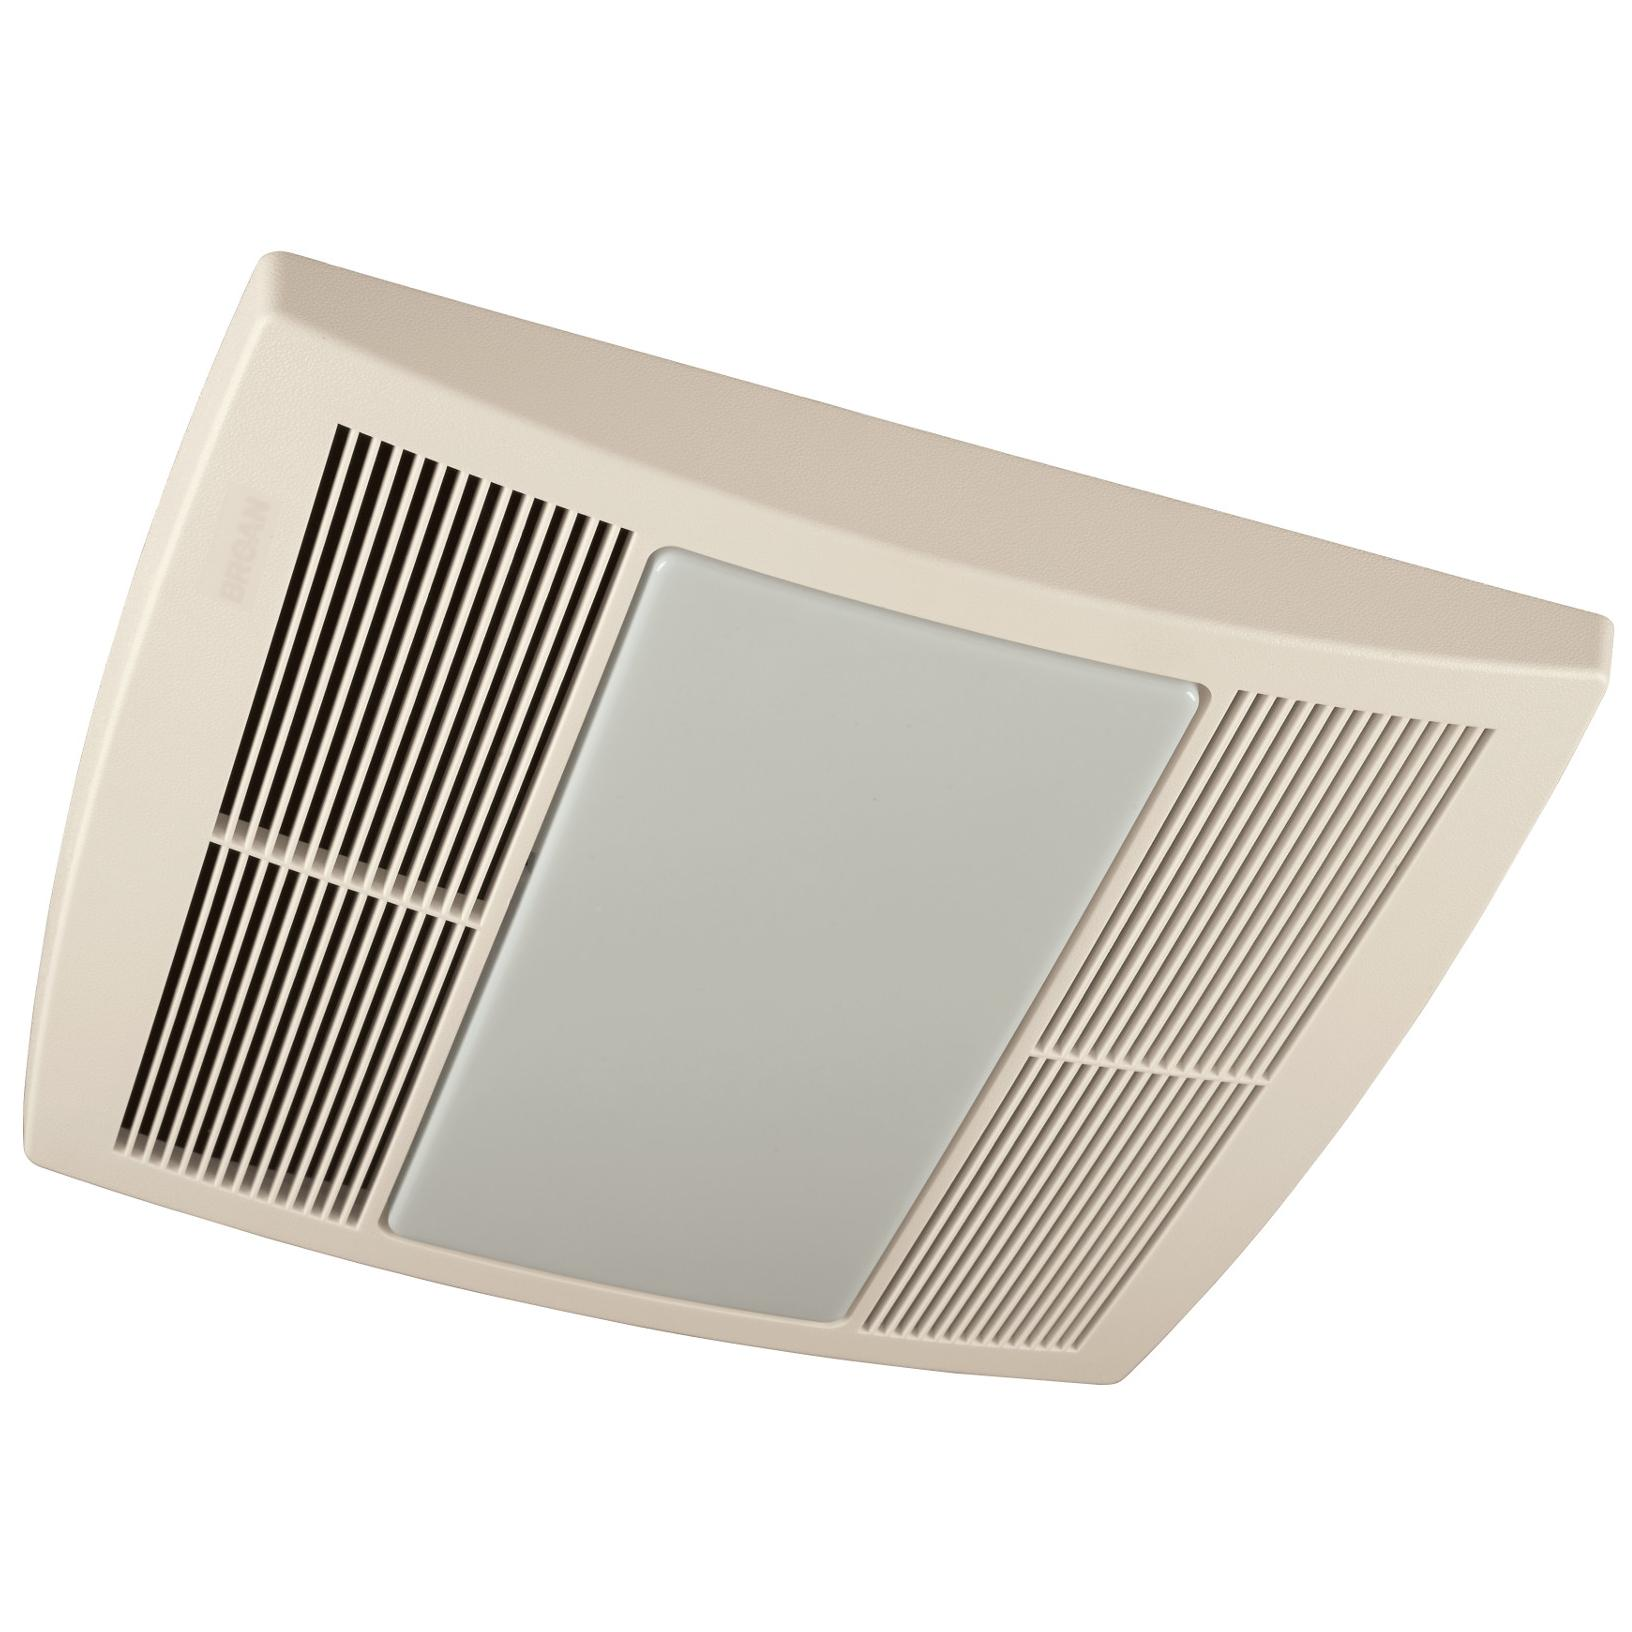 broan bathroom light fan combo broan qtr110l ultra silent bath fan 110 cfm white grille 22813